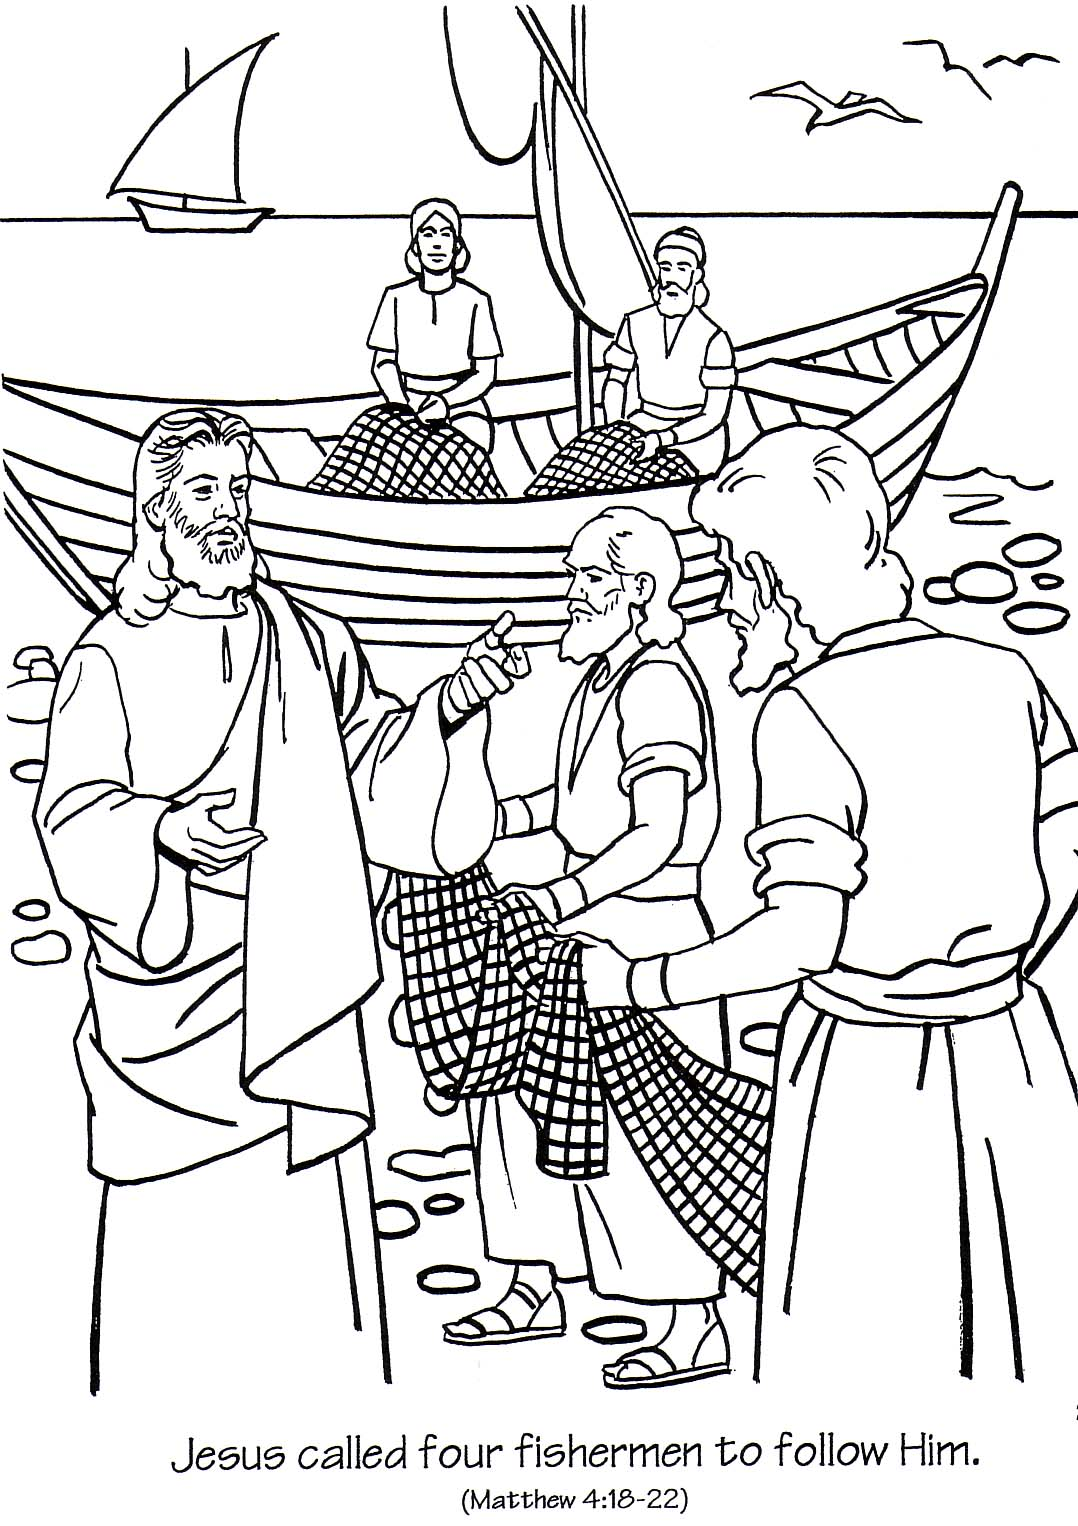 Coloring Pages For Following Jesus. COLORING PAGE Jesus  Ministry In Galilee Coloring Page